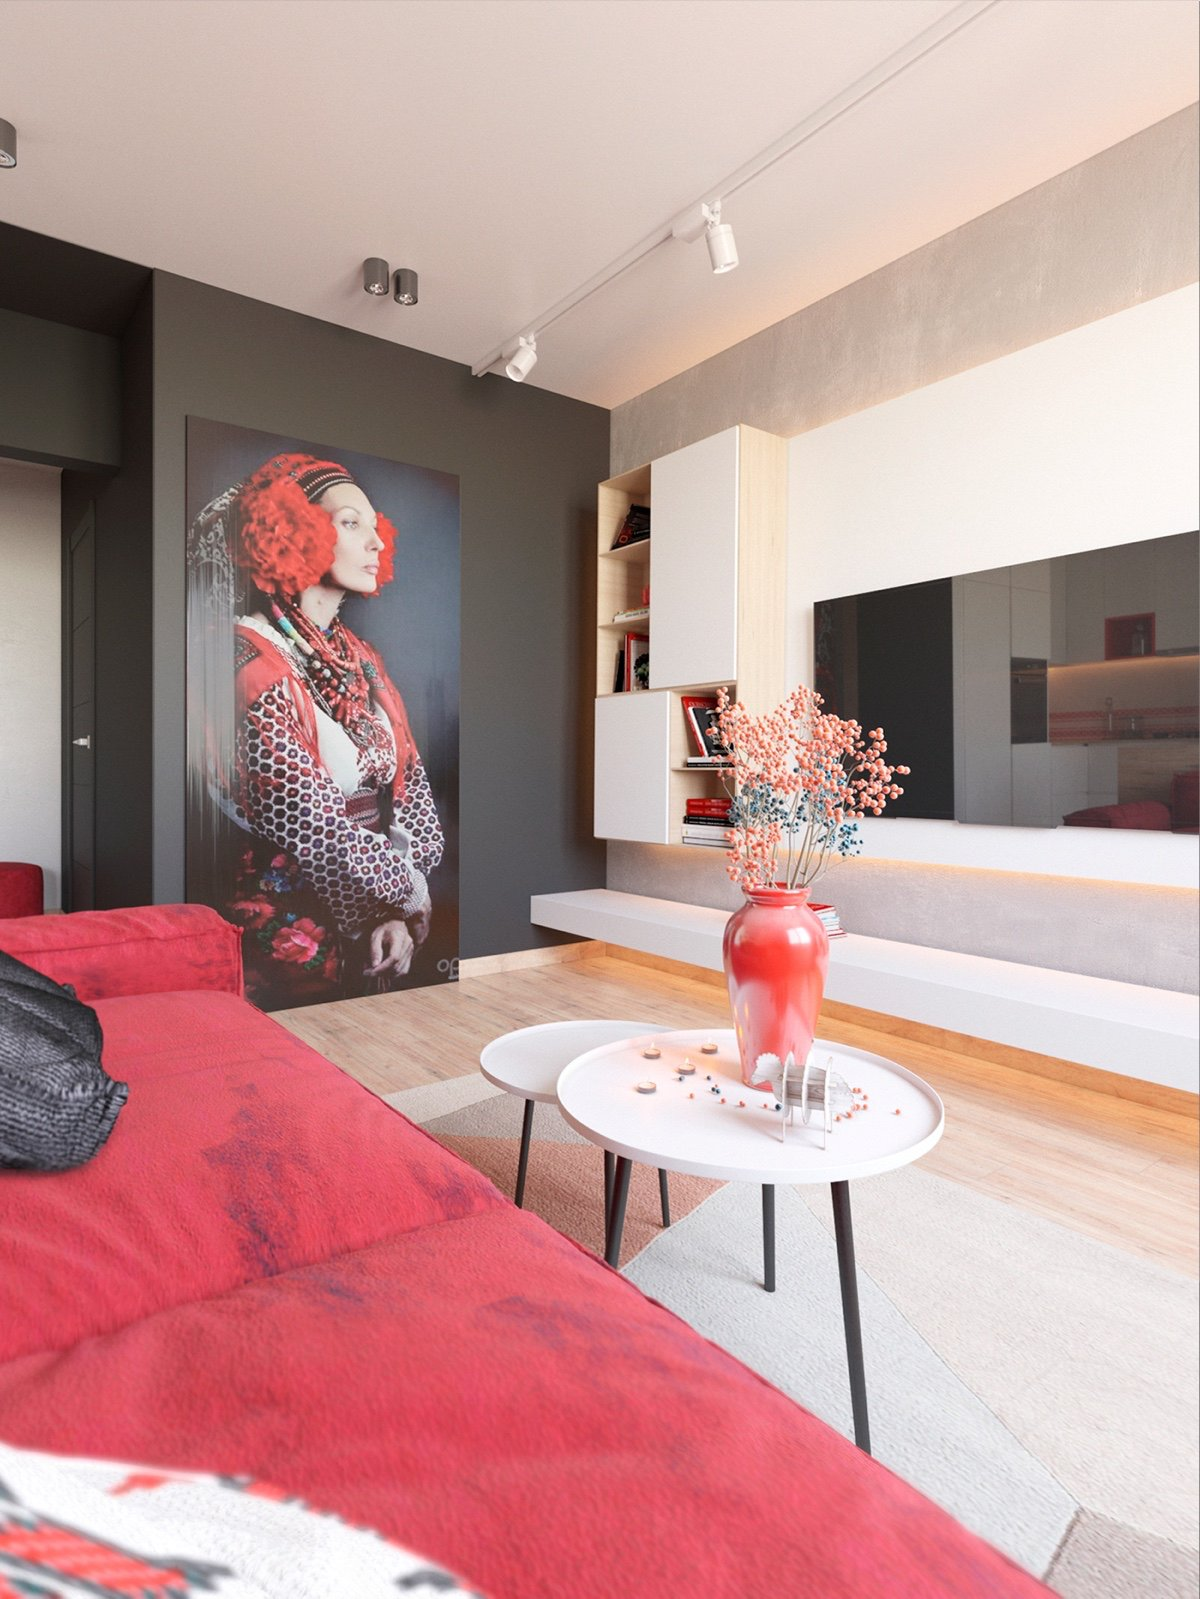 Red Flower Vase - 3 modern apartment interiors that masterfully demonstrate how to use red as an artistic accent